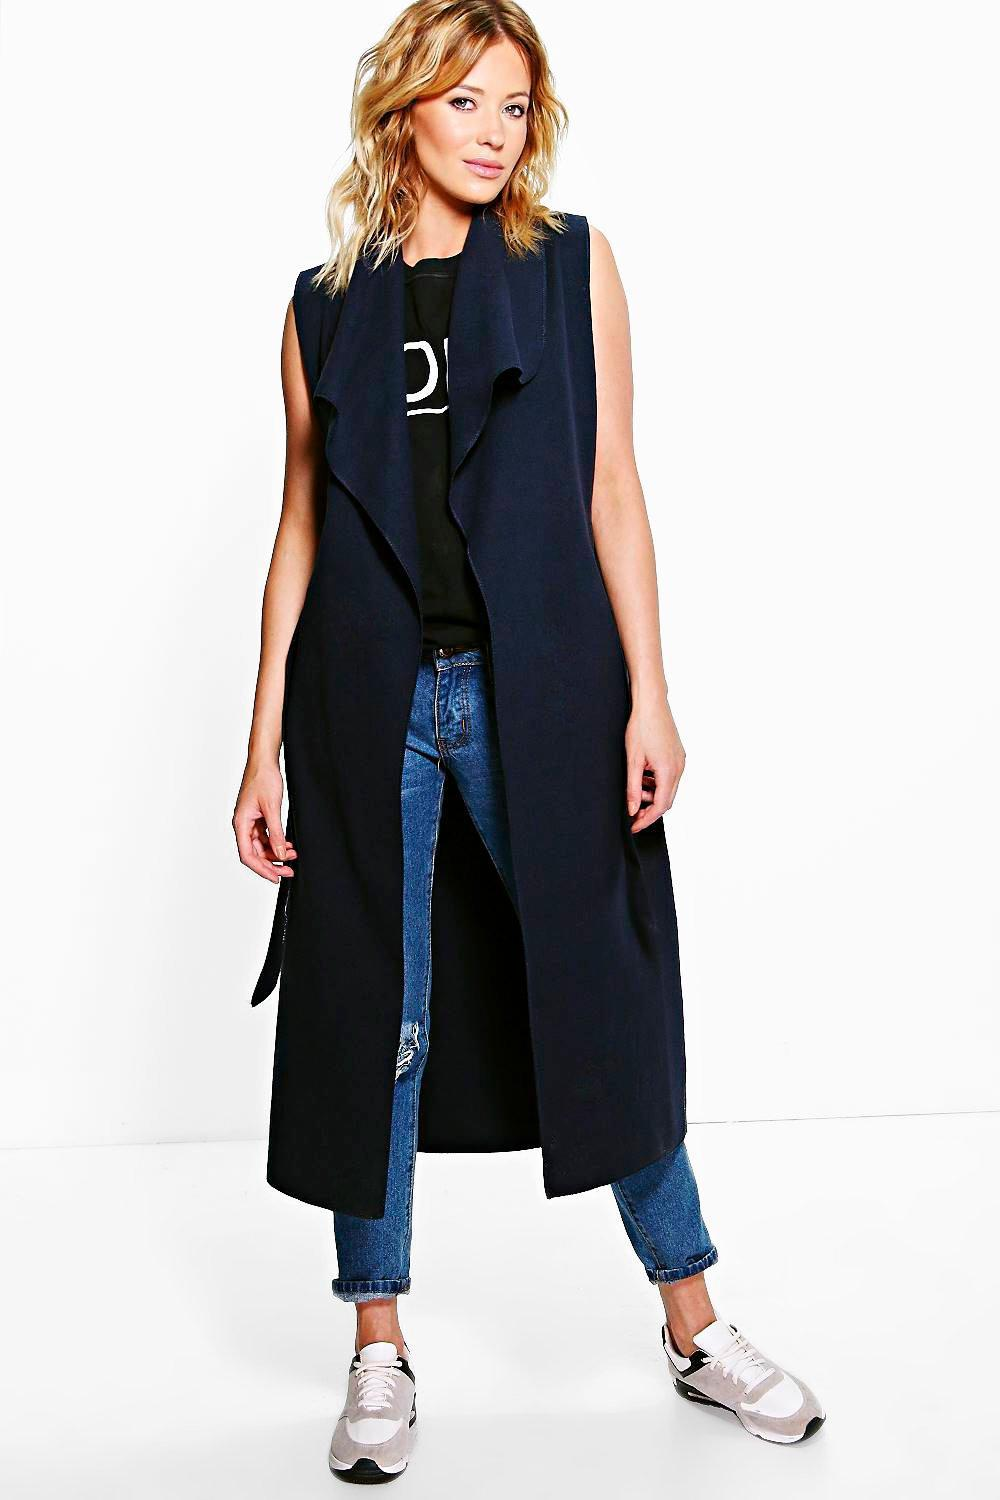 878f5fc5e3570 Lyst - Boohoo Olivia Waterfall Belted Sleeveless Coat in Blue